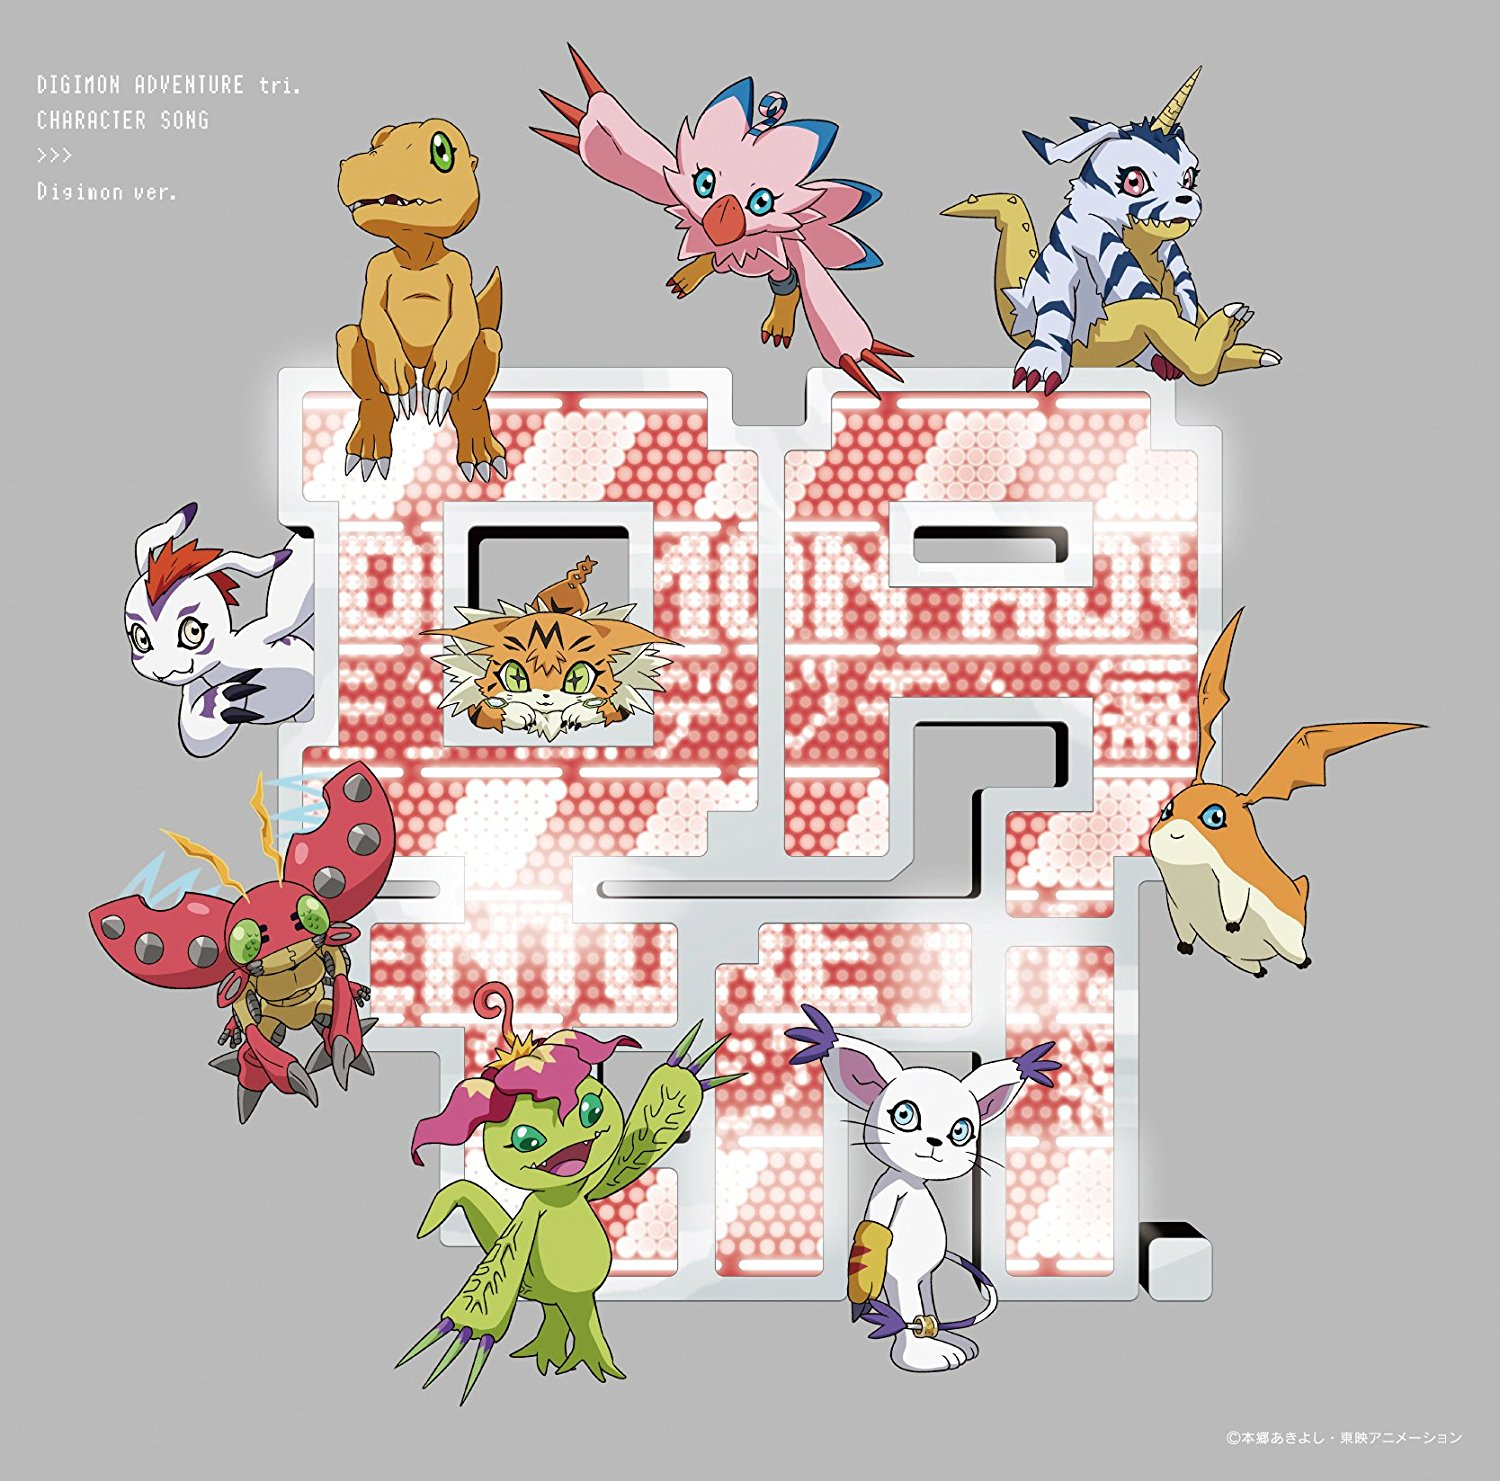 [MEDIAFIRE] Digimon Adventure Tri. Character Song